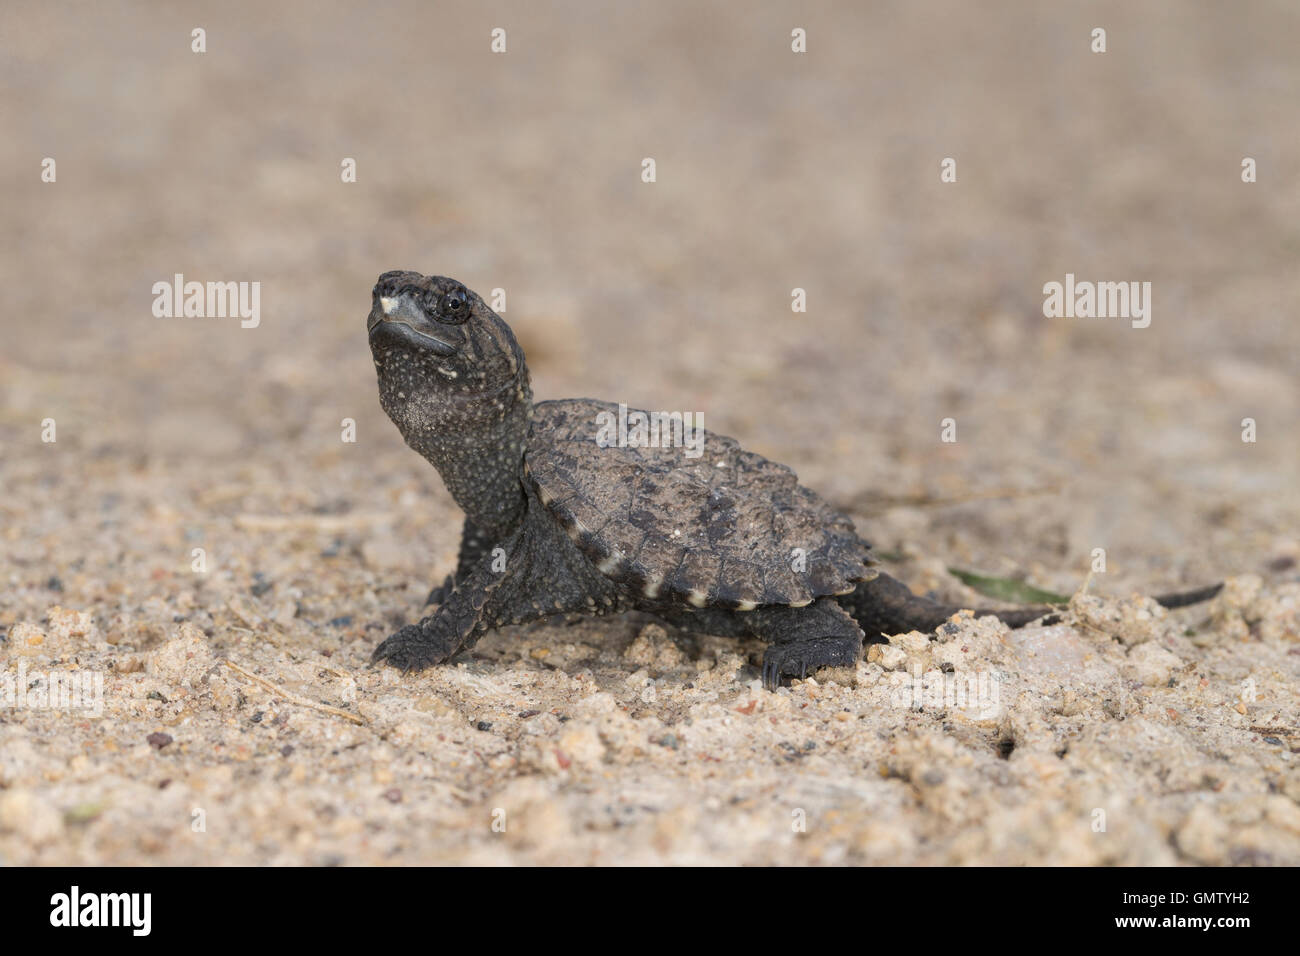 Snapping Turtle Hatchling Stock Photo